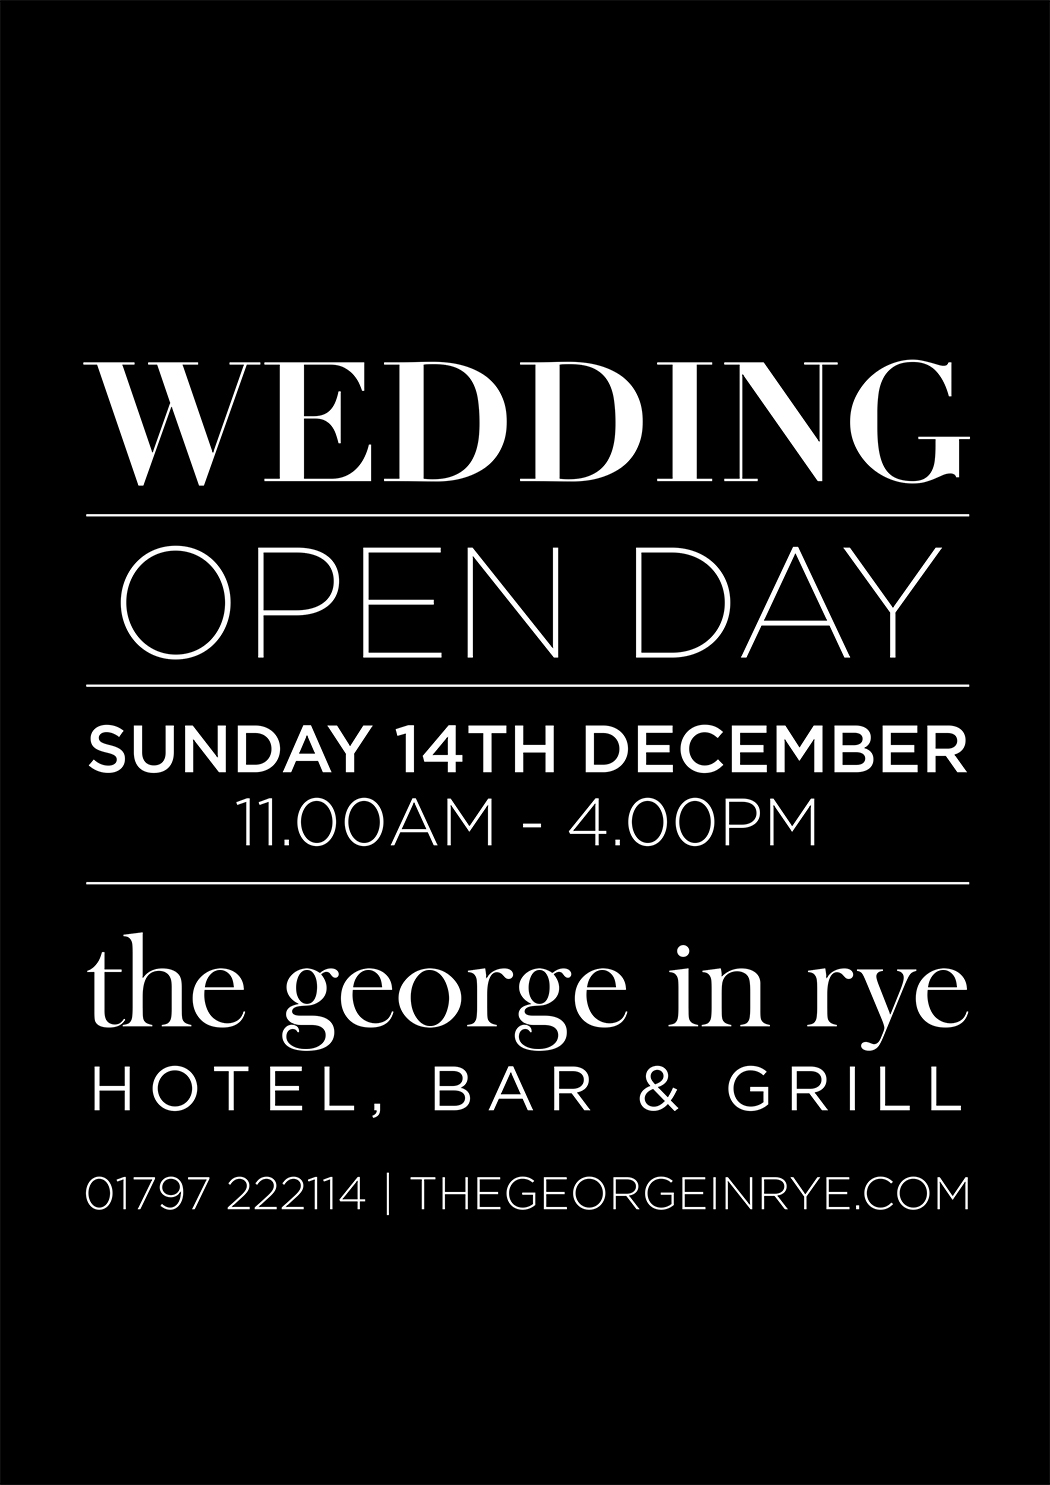 east-sussex-wedding-venue-wedding-open-day-christmas-the-george-in-rye-coco-wedding-venues-03